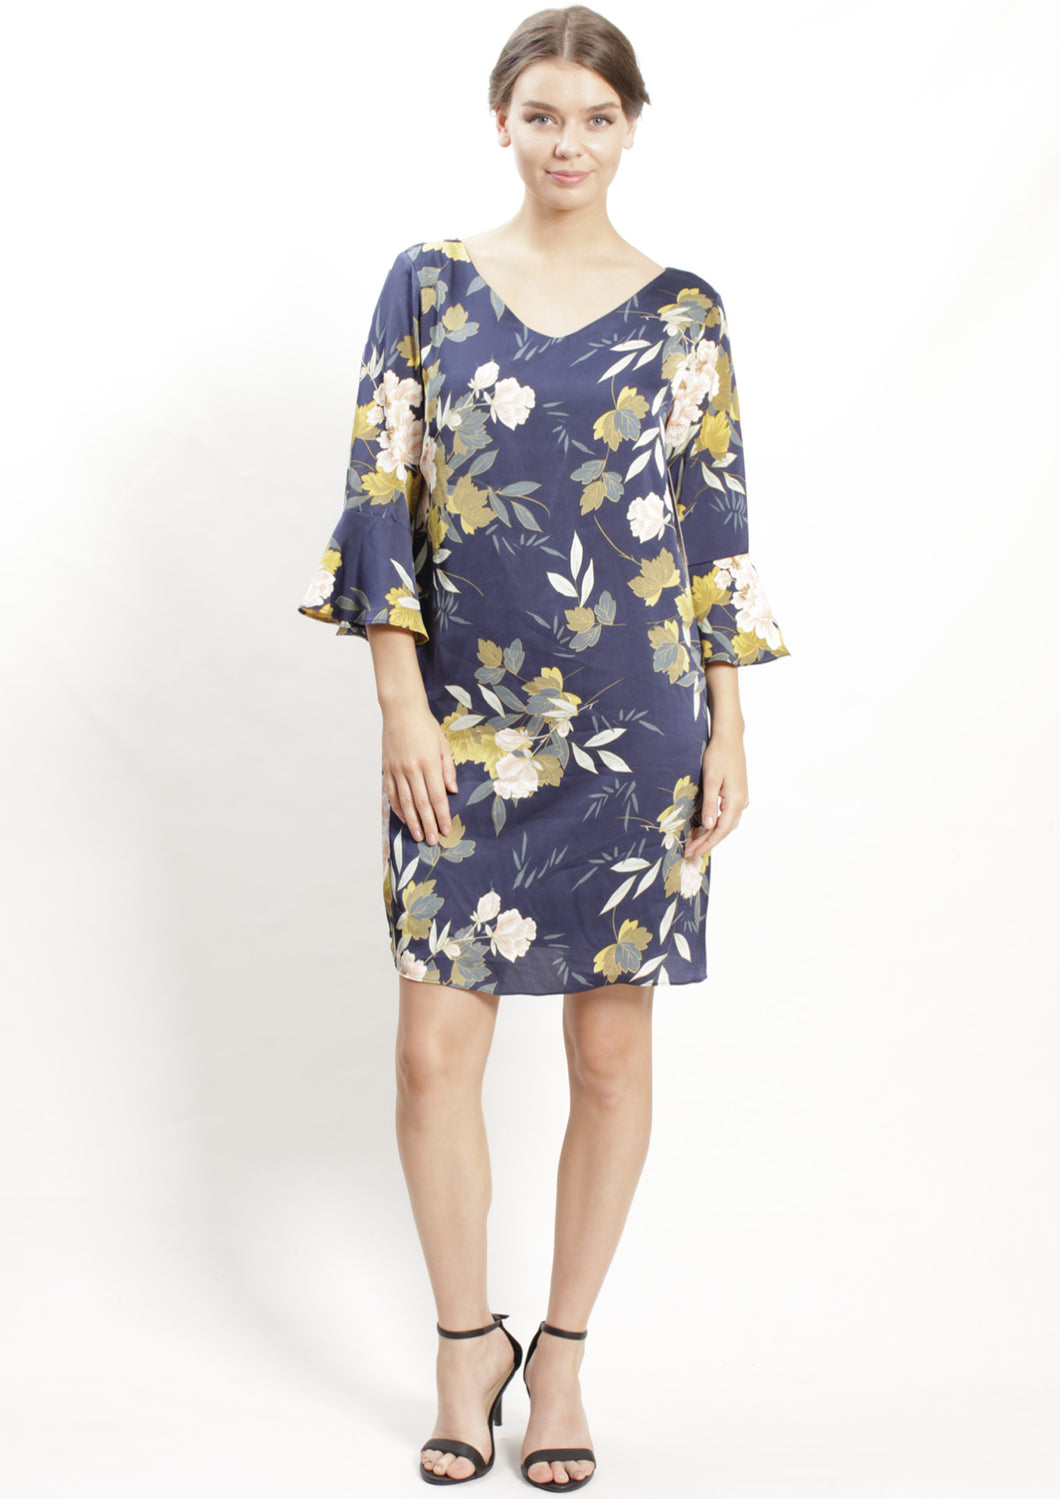 VS7016-2NC Floral Print Ruffle Sleeve Dress (Pack)